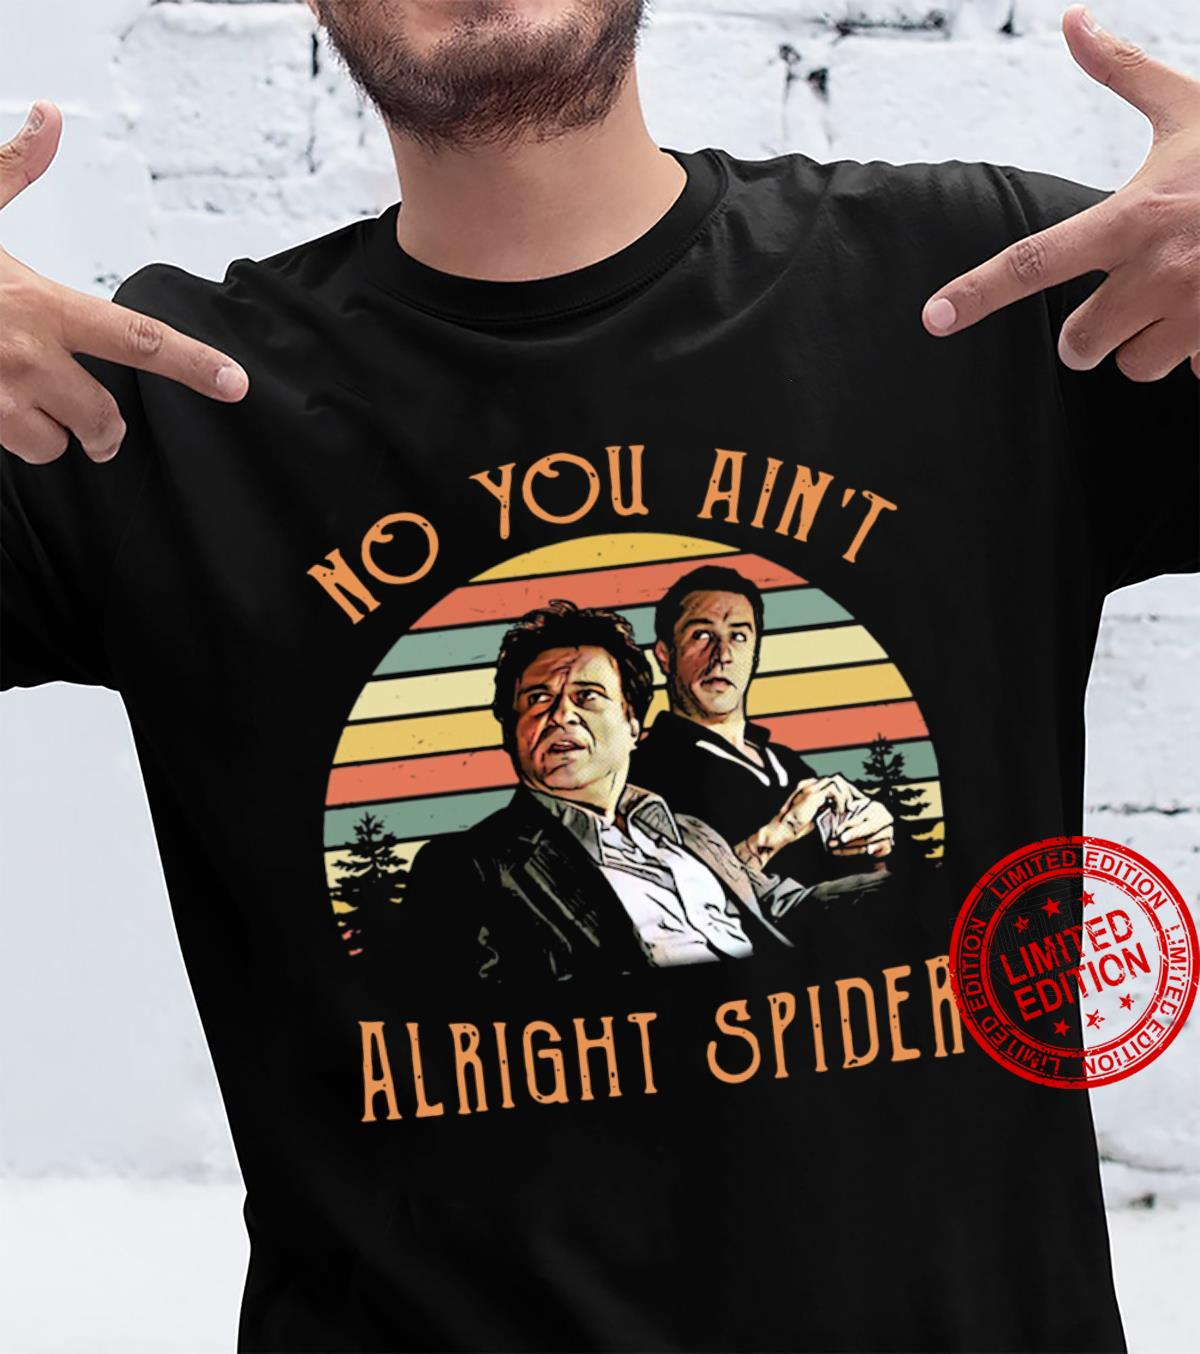 Retro Sunset Goodfellas Tommy DeVito Jimmy Conway no you ain't alright spider shirt